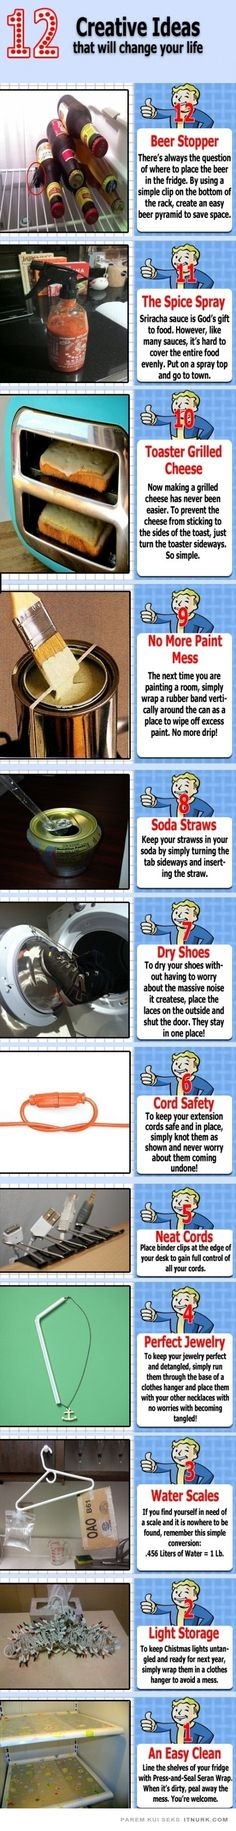 Simple Ideas That Are Awesome!